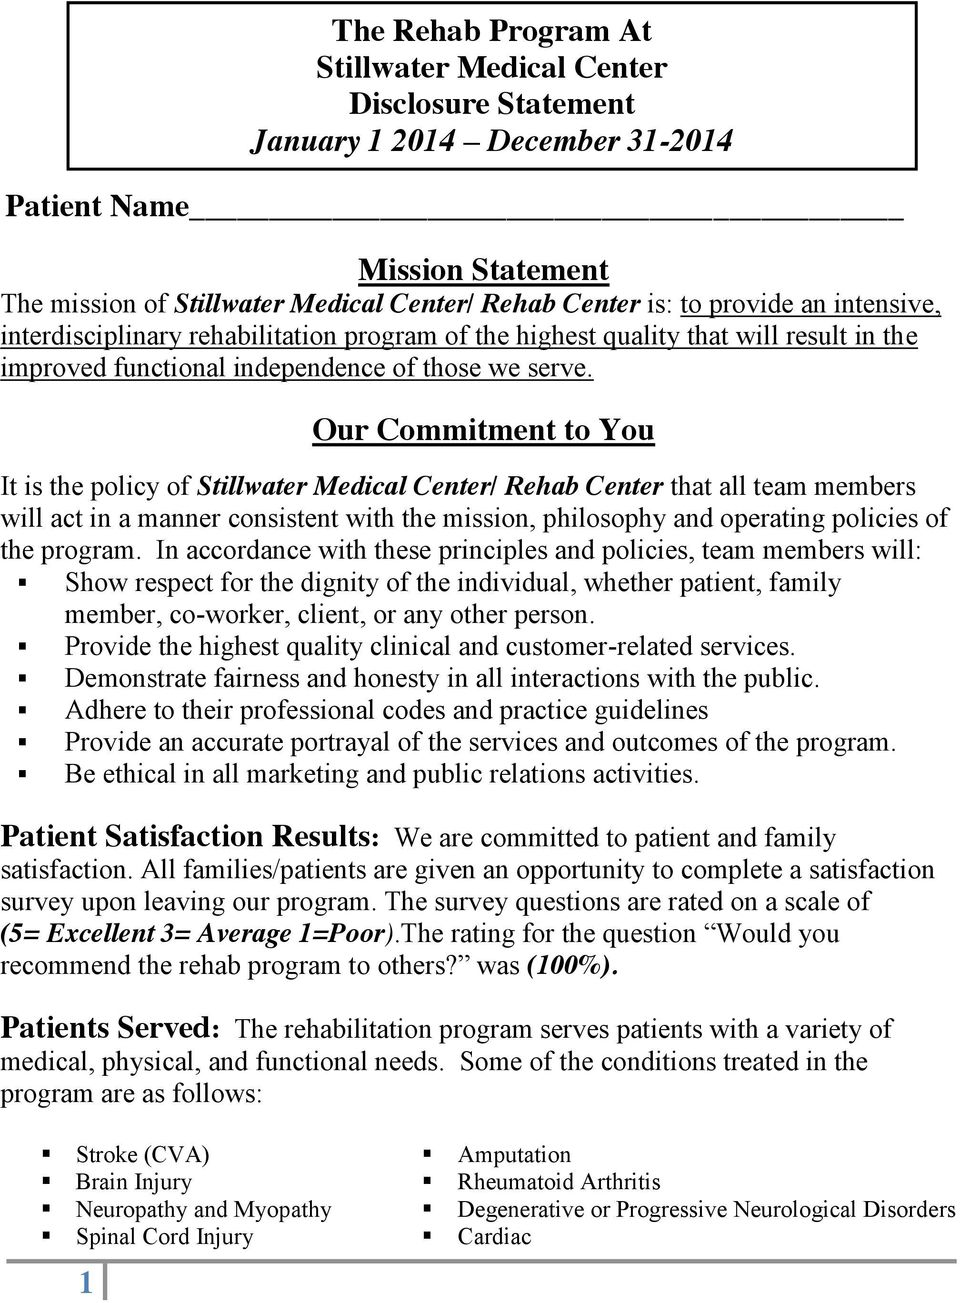 1 The Rehab Program At Stillwater Medical Center Disclosure Statement January 1 2014 December 31-2014 Our Commitment to You It is the policy of Stillwater Medical Center/ Rehab Center that all team